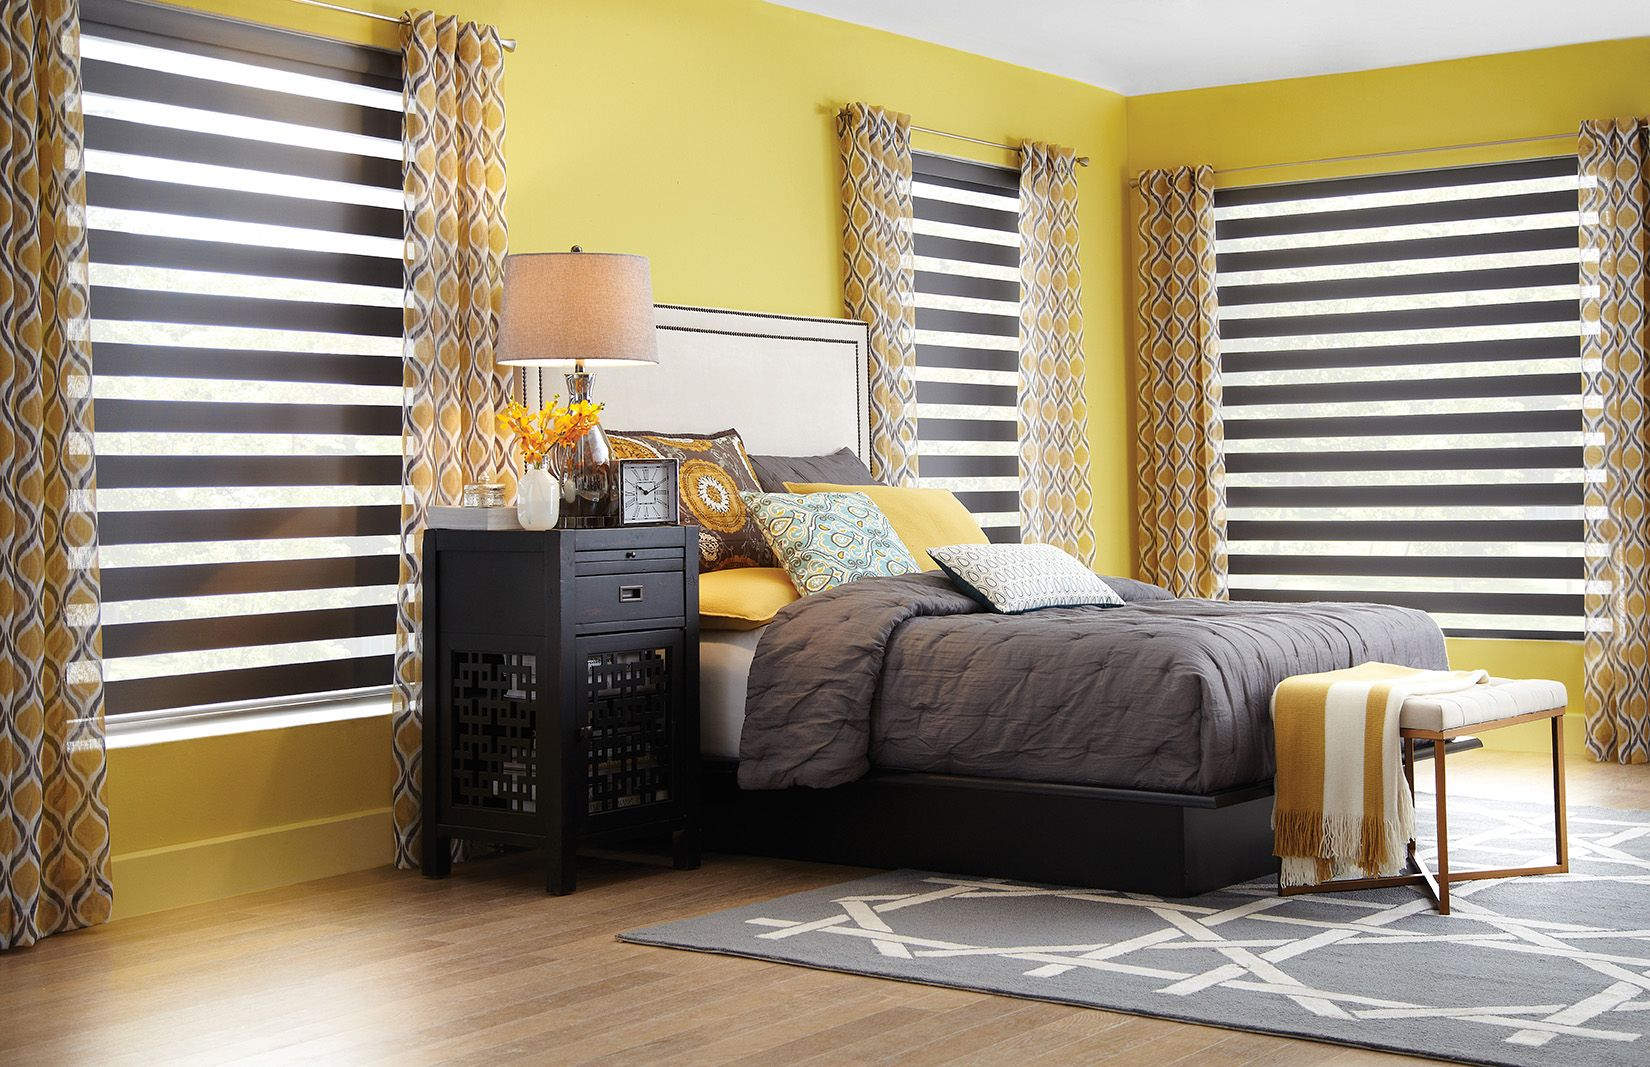 ads window blind lake the ut best date city fashions view places alta in for blinds salt